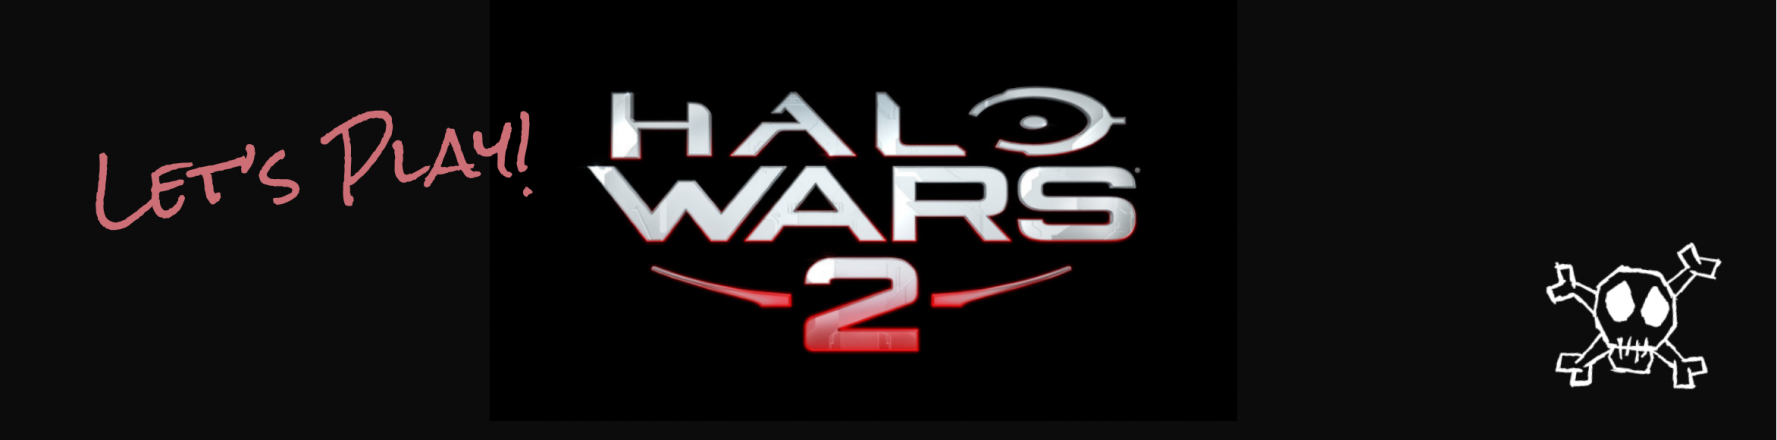 Halo Wars 2 – Initial thoughts